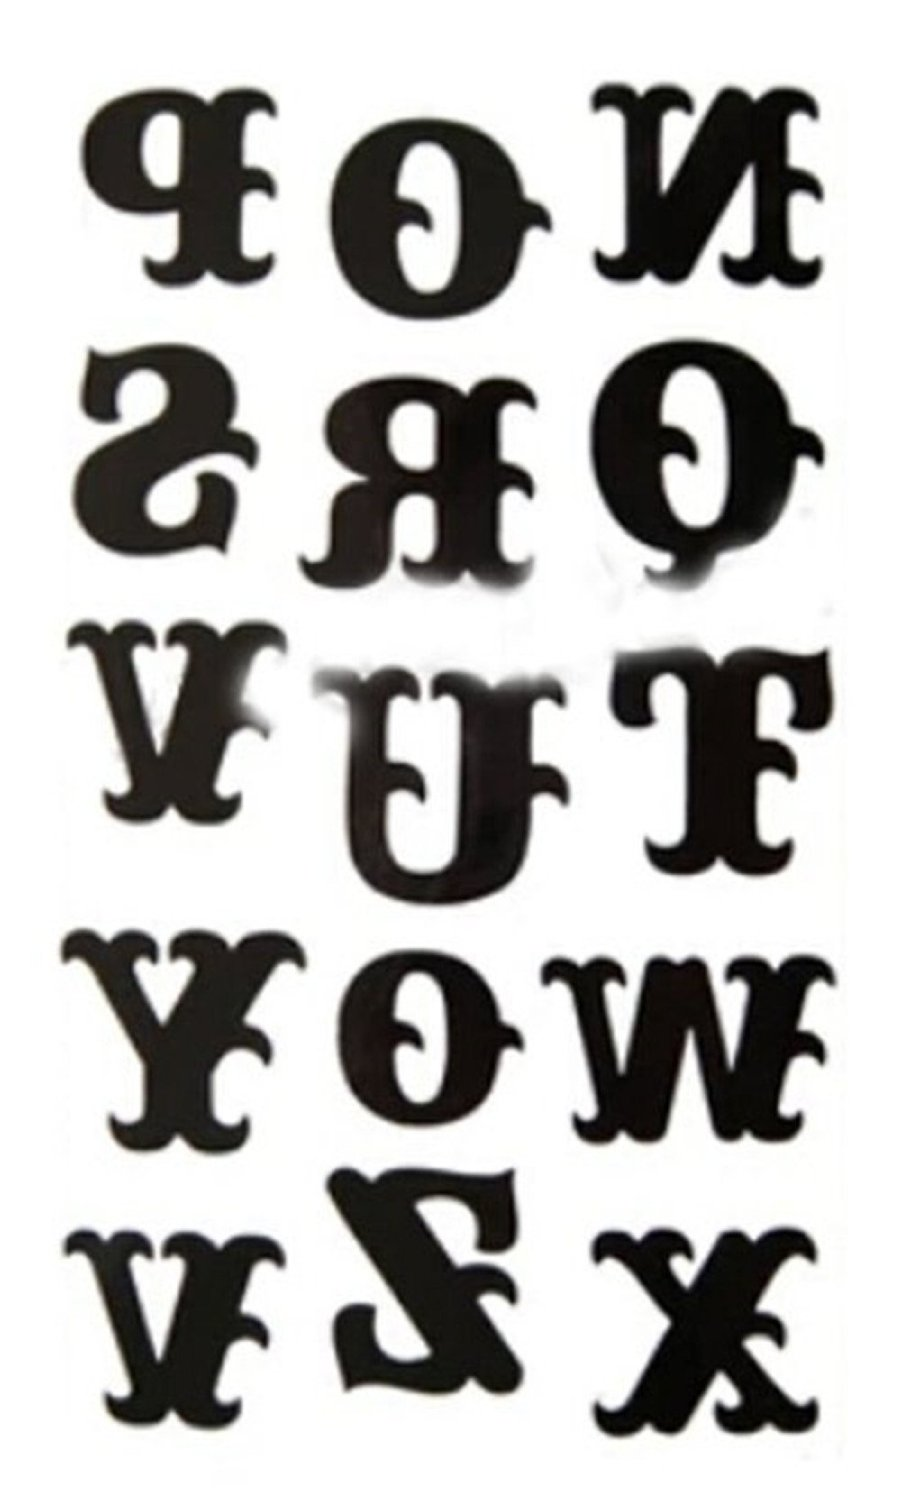 Kangkang@ Set of 1 Cool Gothic Letters DIY Name Body Tattoo Stickers Fake Tattoos Designs